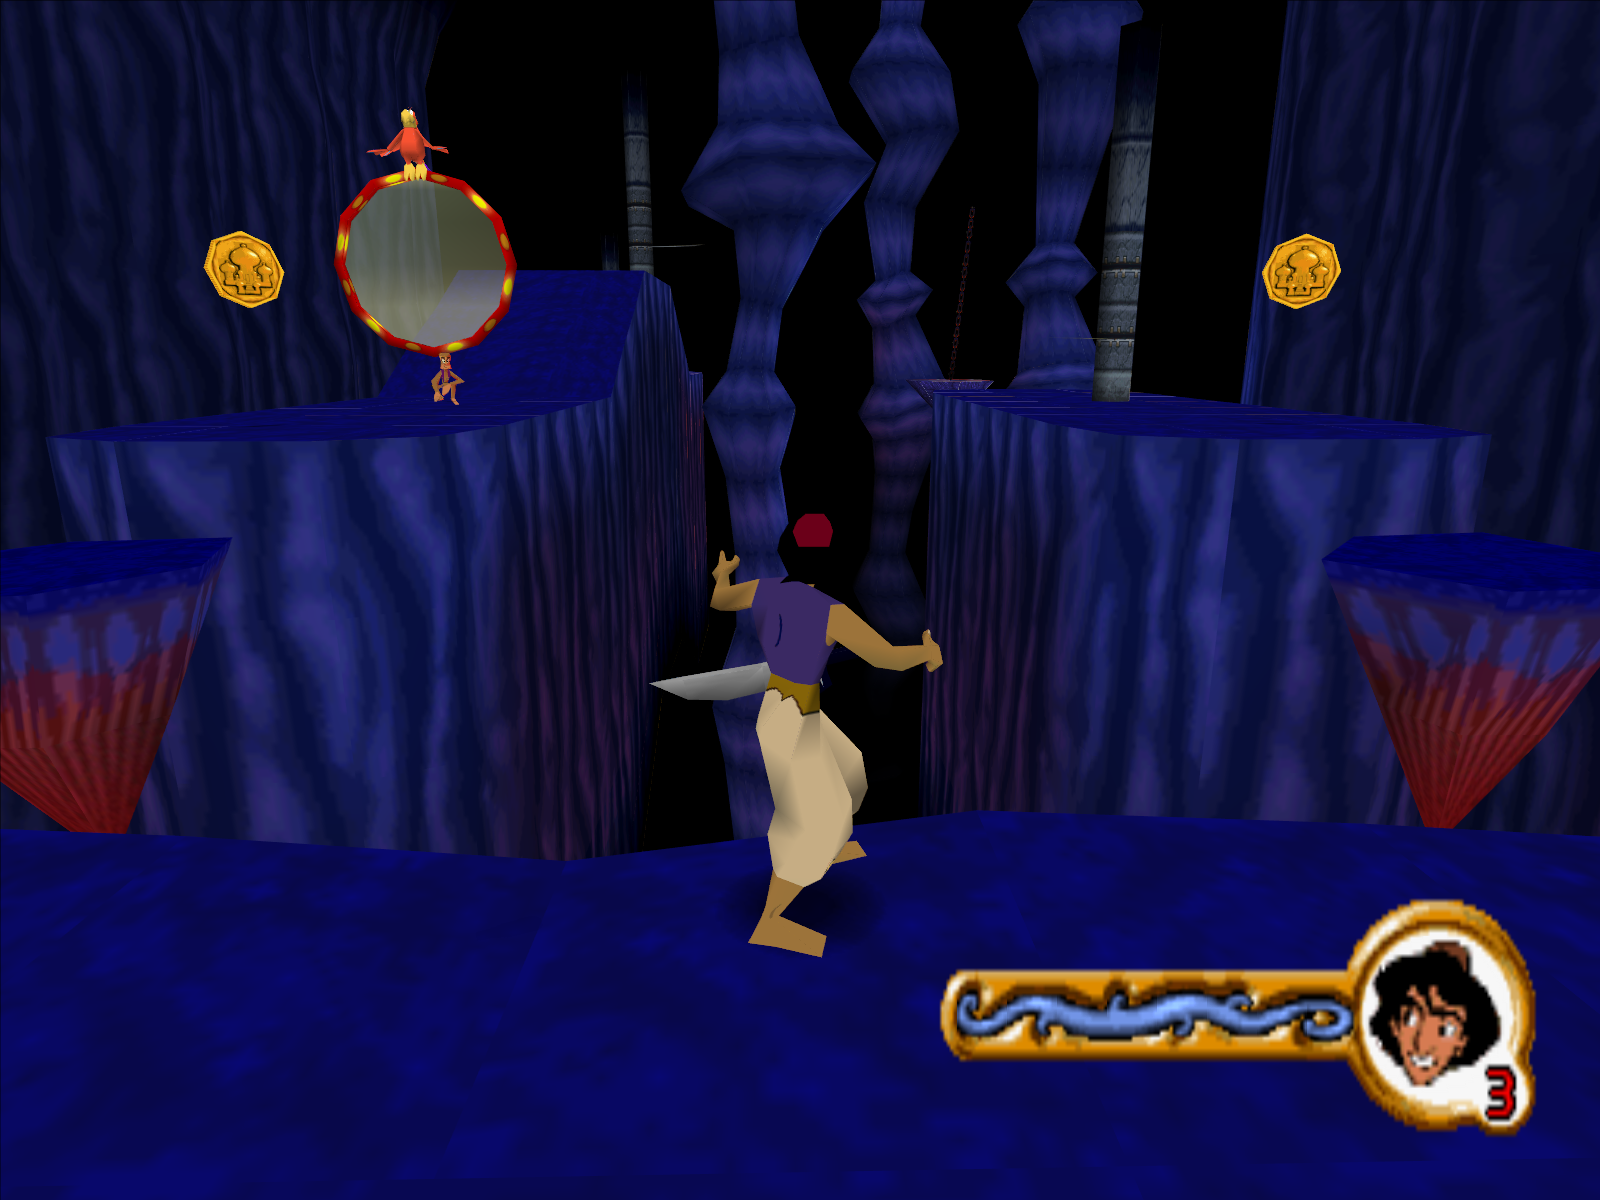 Disney's Aladdin in Nasira's Revenge Windows Inside the cave are pitfalls-o-plenty.